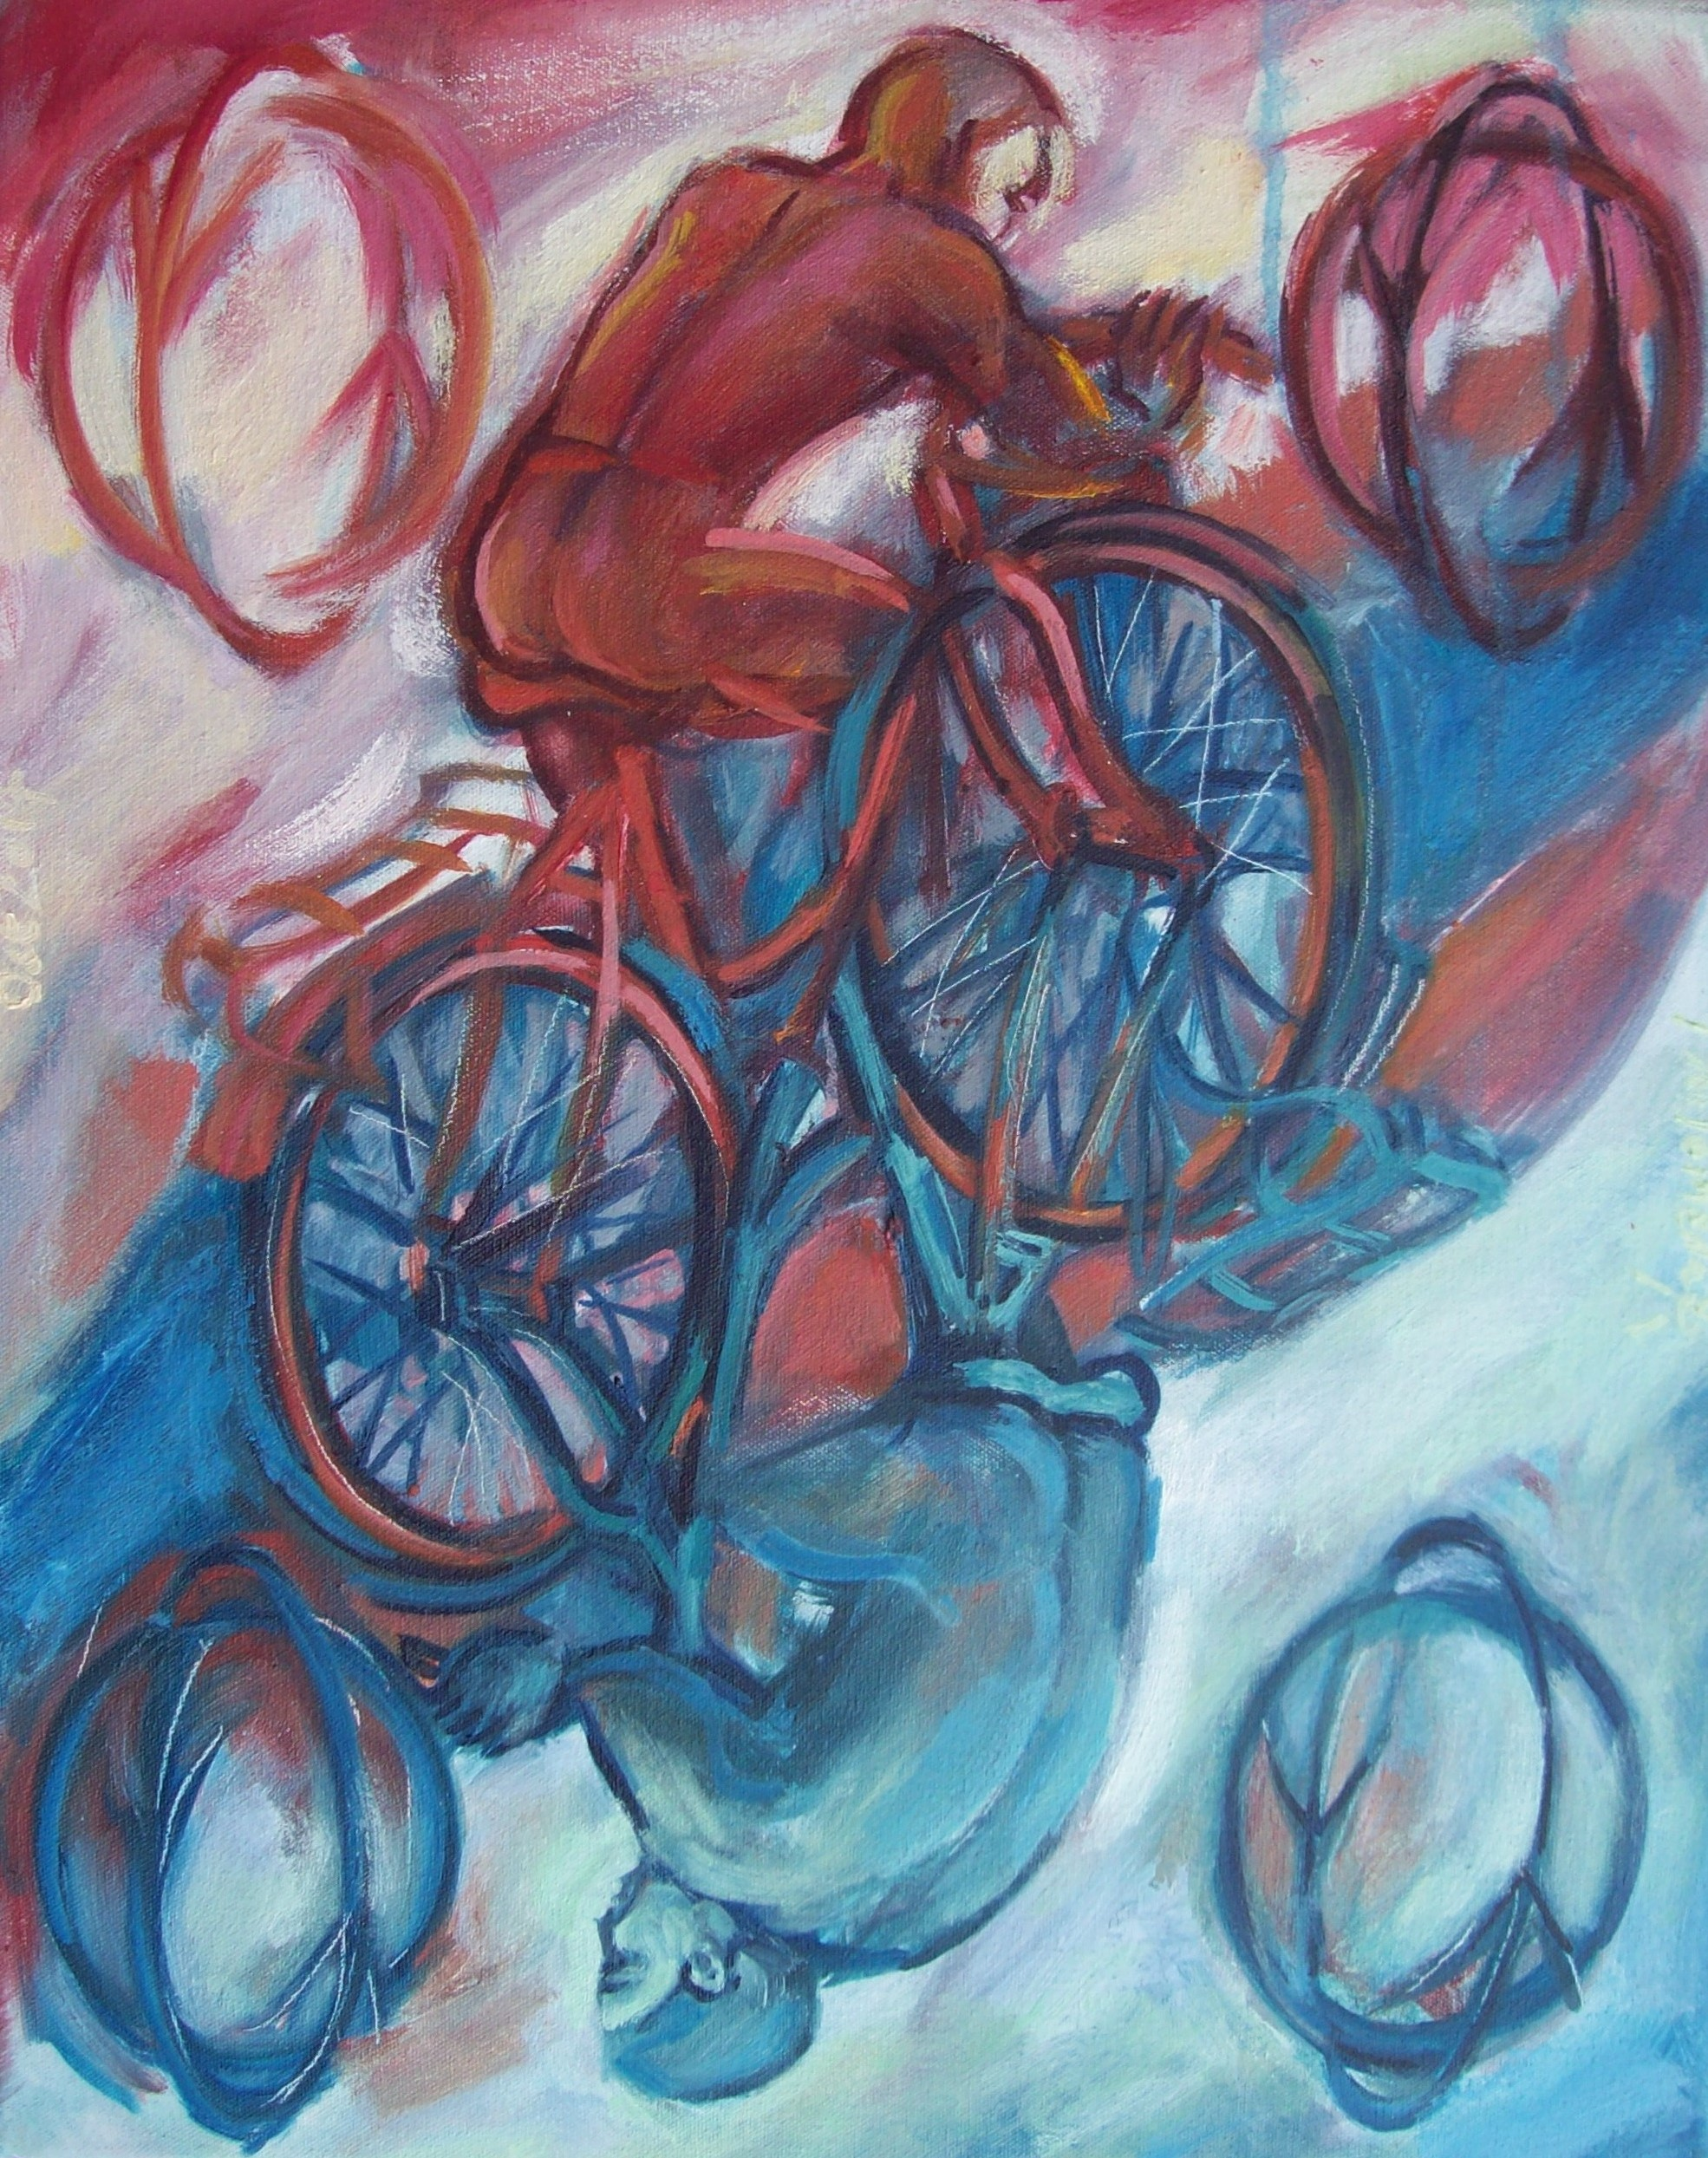 image by Philomena Harmsworth, Two of bikes